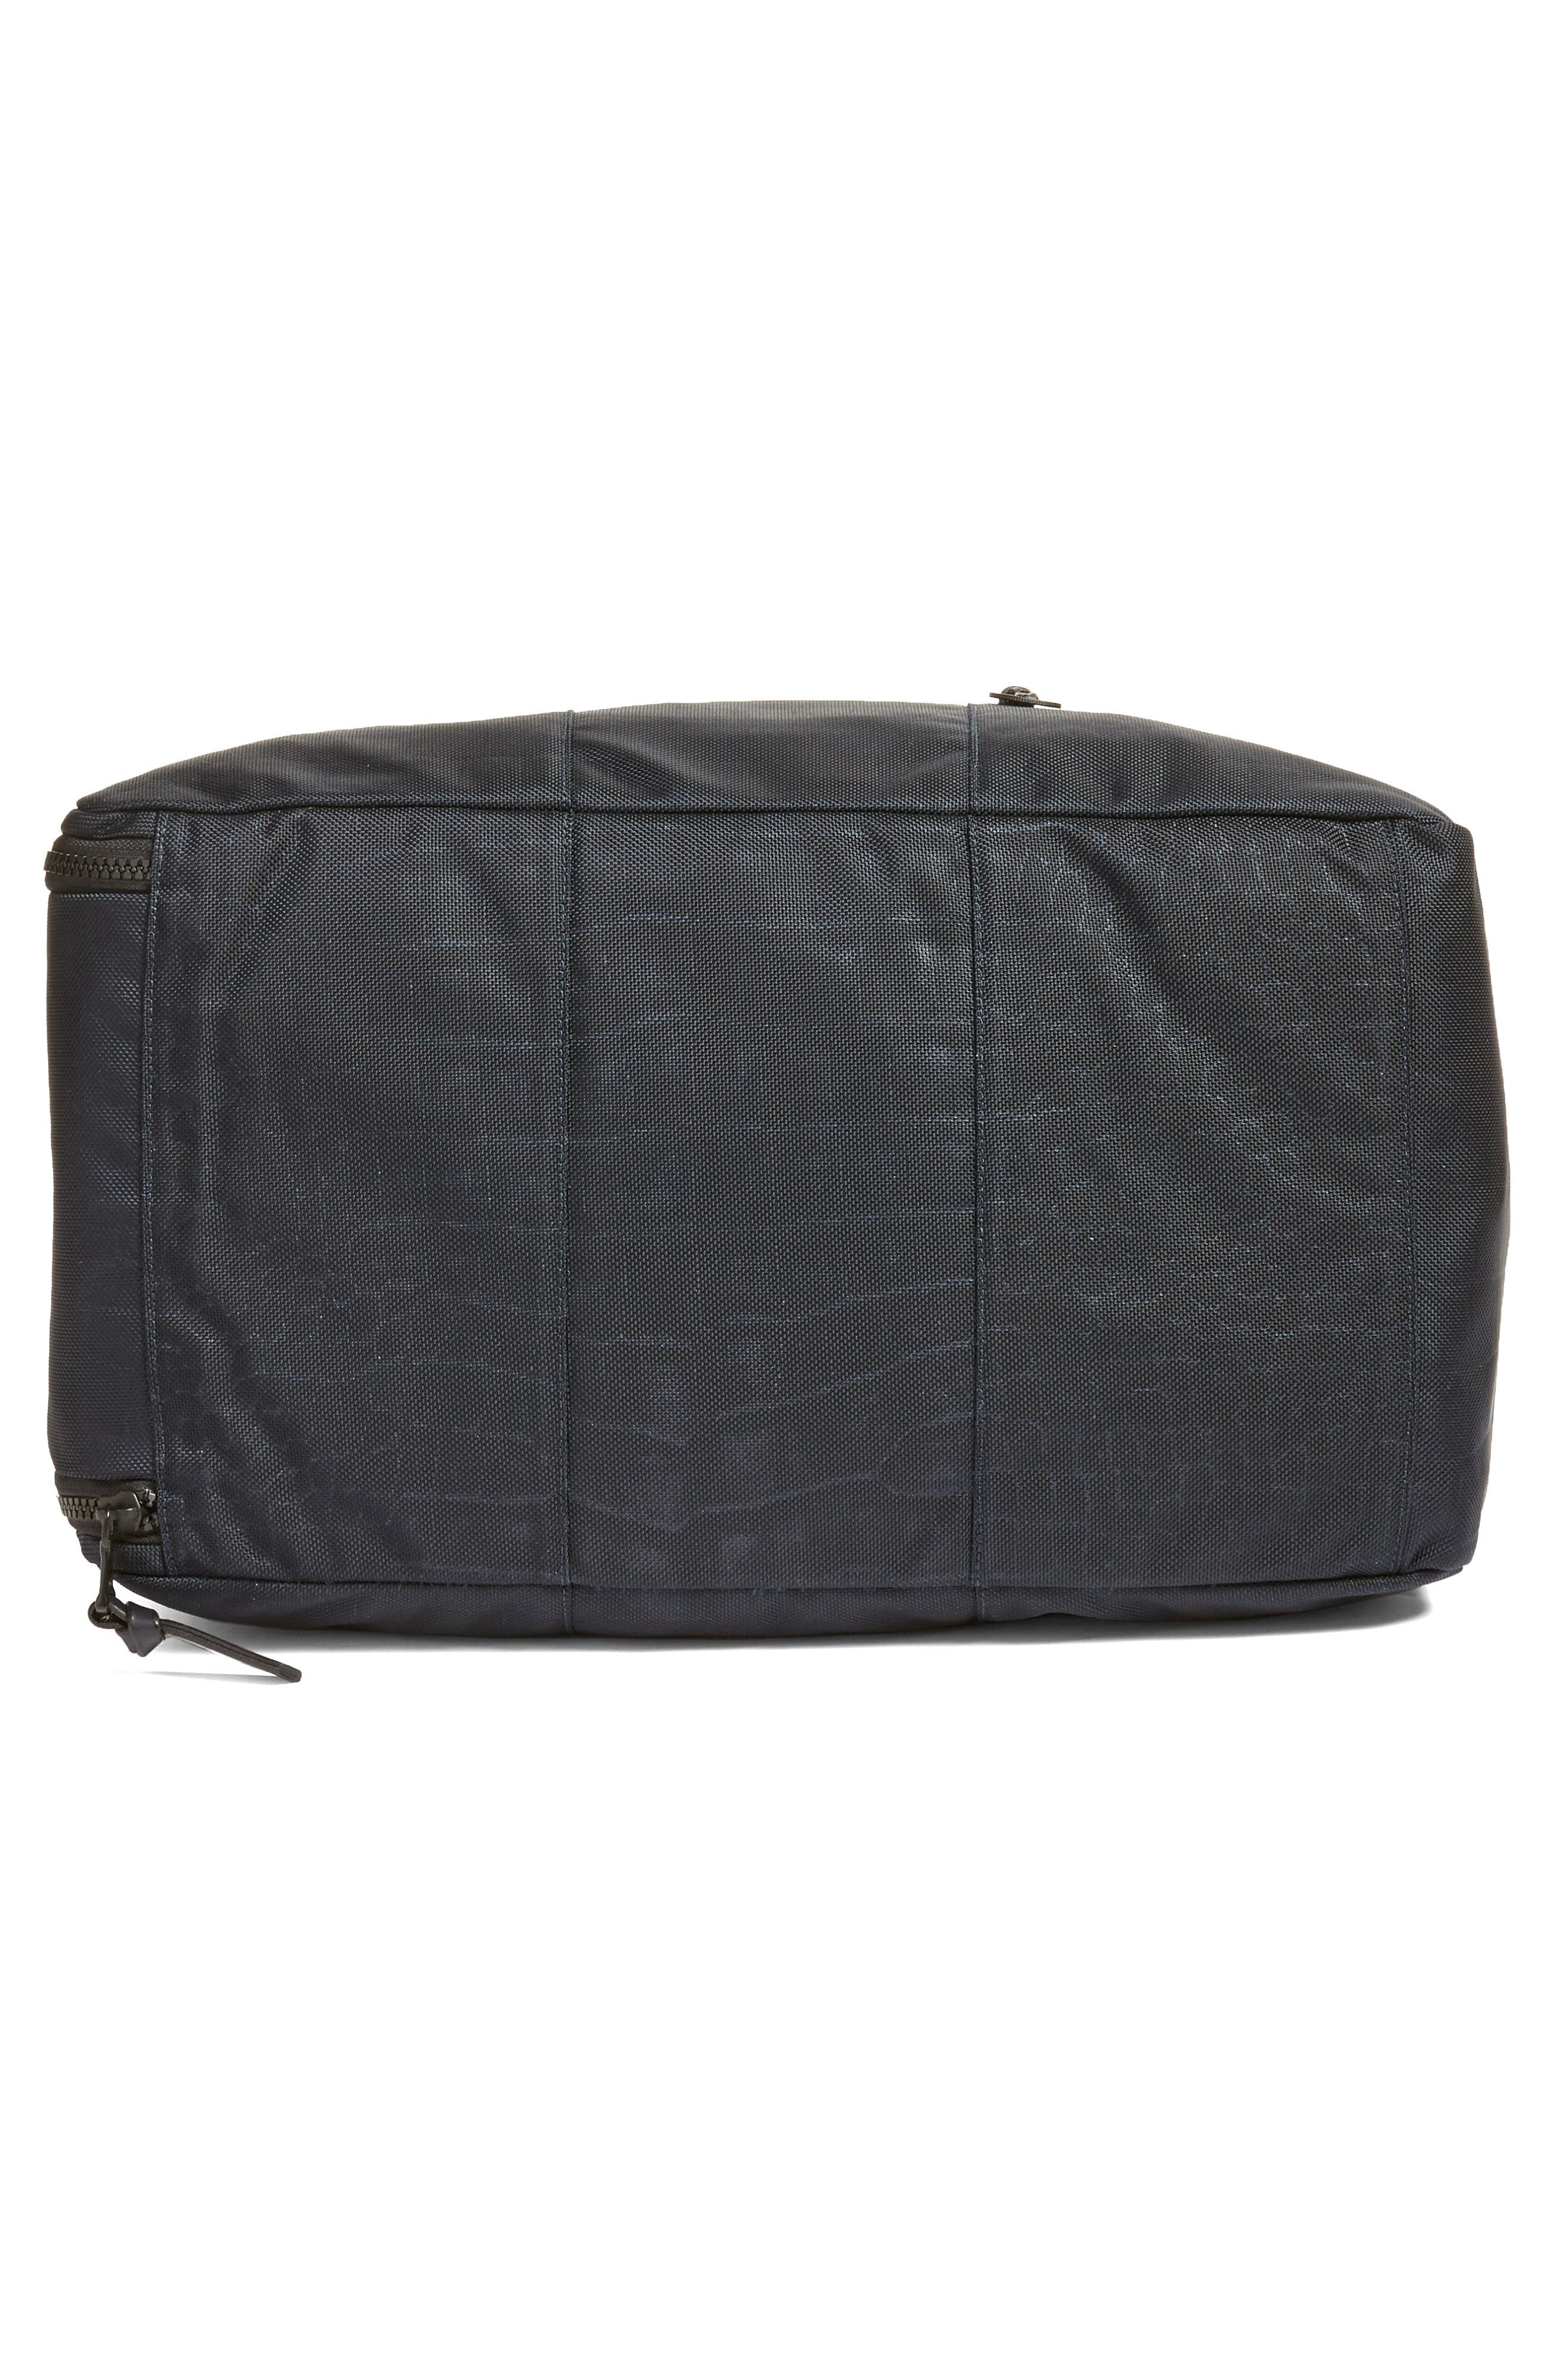 Duffel Bag,                             Alternate thumbnail 6, color,                             Navy